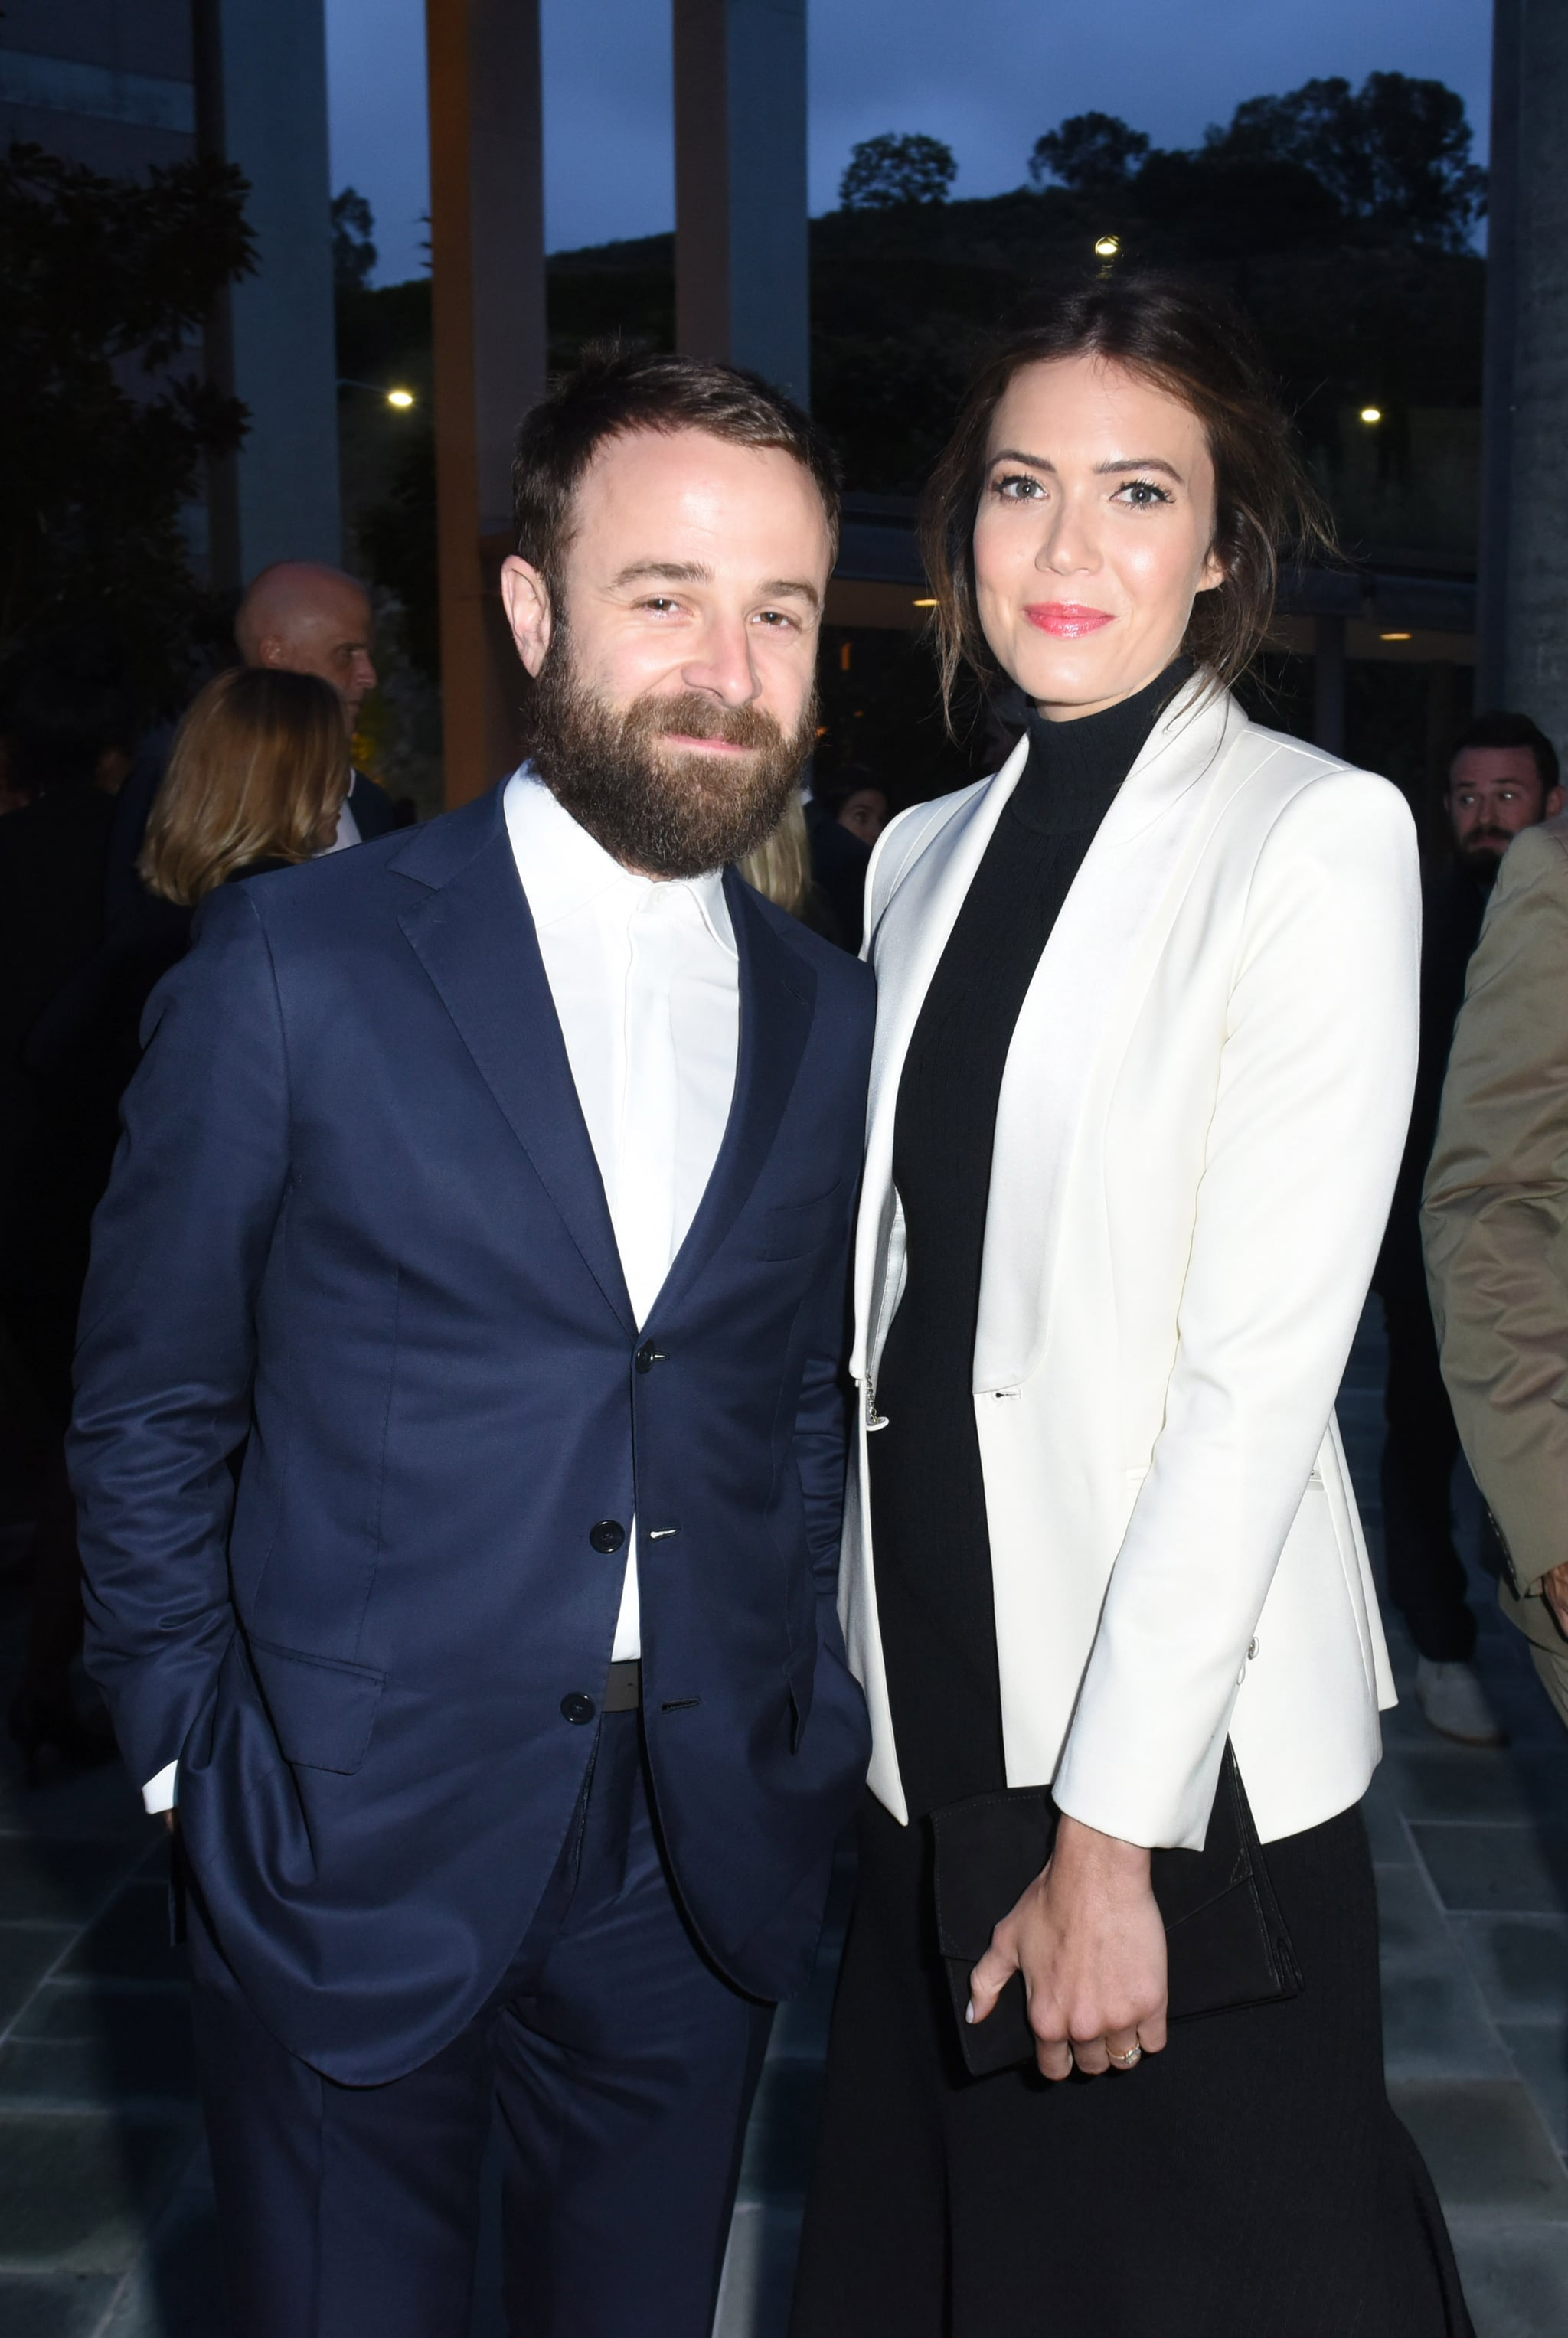 LOS ANGELES, CA - MAY 01:  Taylor Goldsmith and Mandy Moore attend Communities in Schools Annual Celebration on May 1, 2018 in Los Angeles, California.  (Photo by Vivien Killilea/Getty Images for Communities in Schools of Los Angeles)